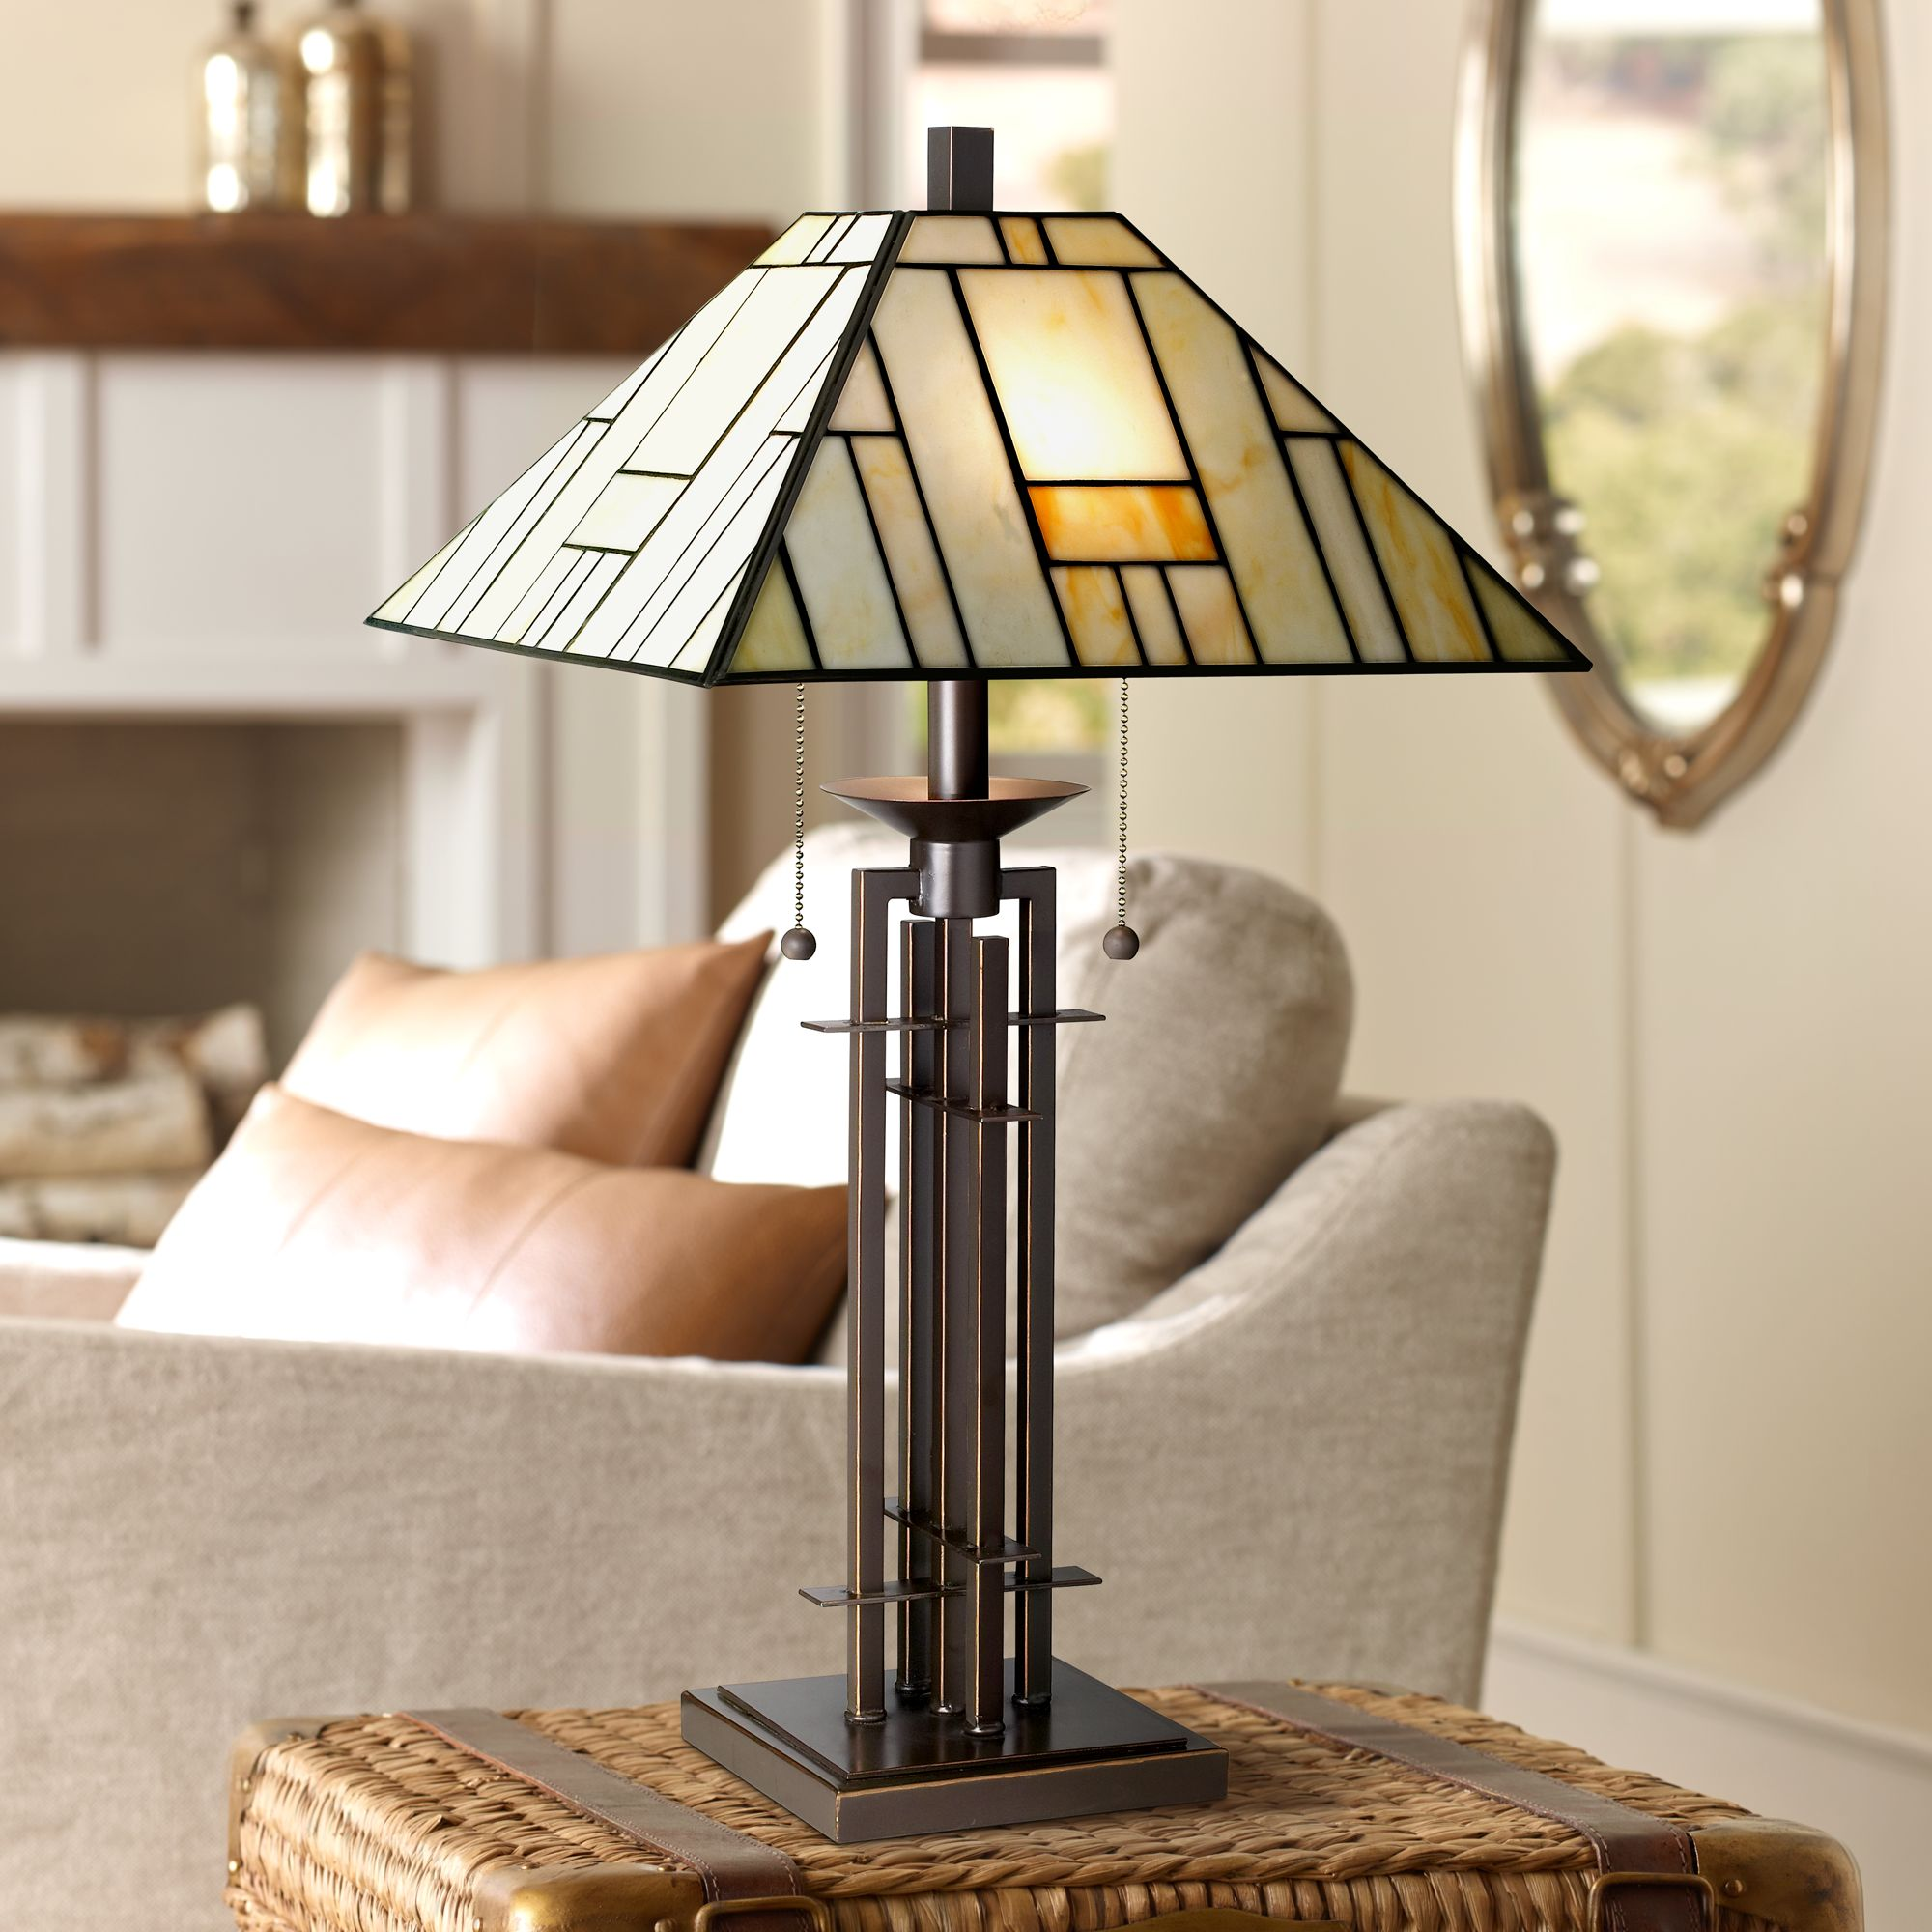 Franklin Iron Works Wrought Iron Tiffany Style Table Lamp